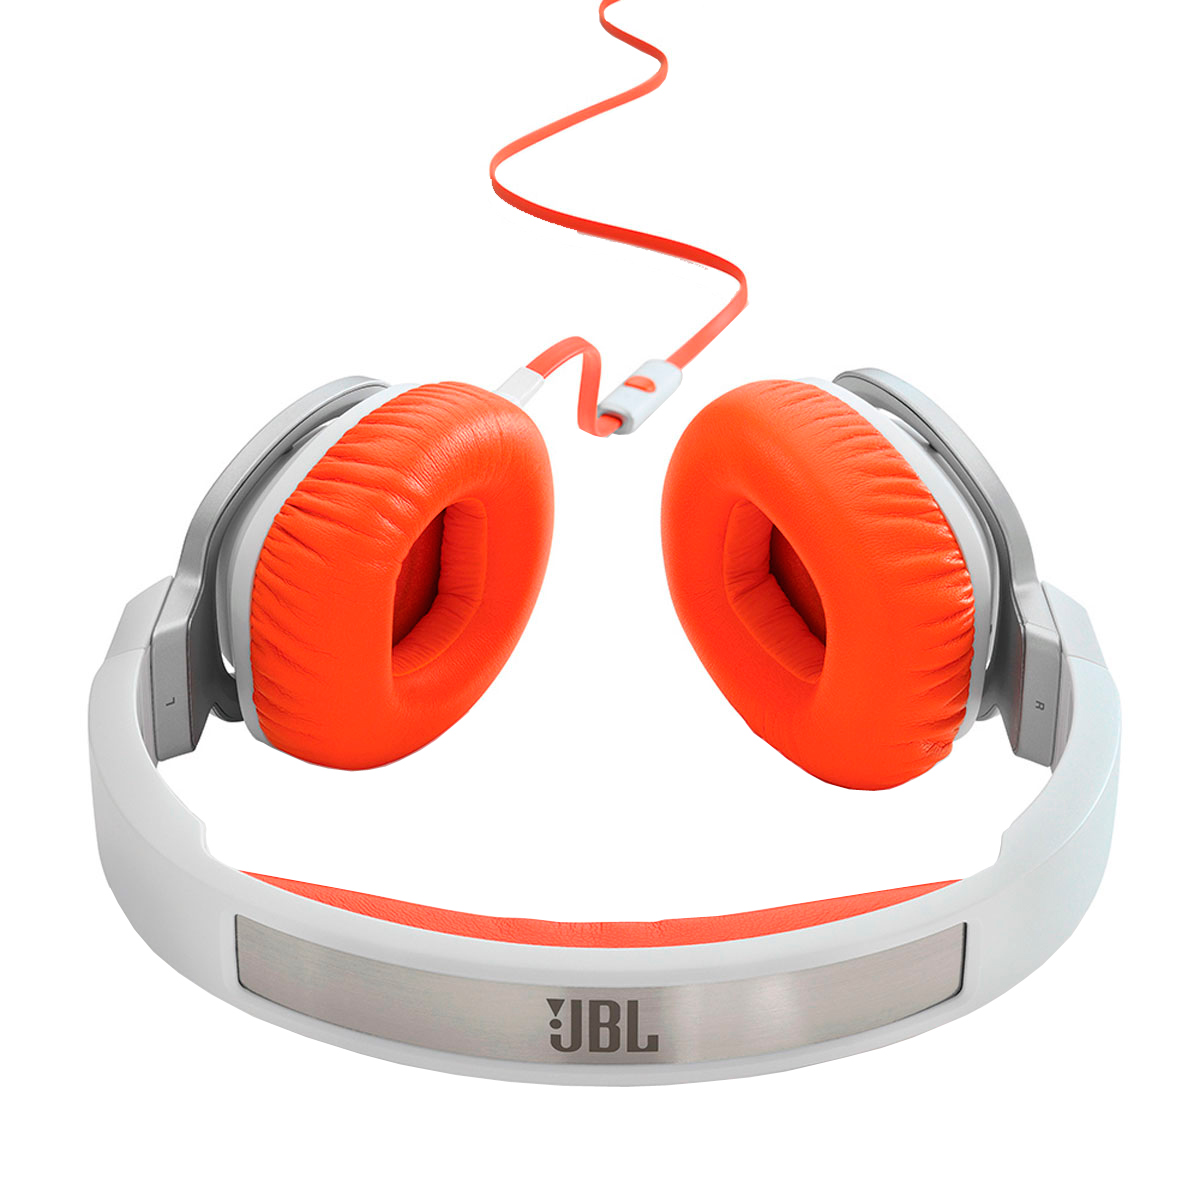 J55i - Fone de Ouvido On-Ear c/ Microfone p/ iPhone / iPad / iPod J 55i - JBL